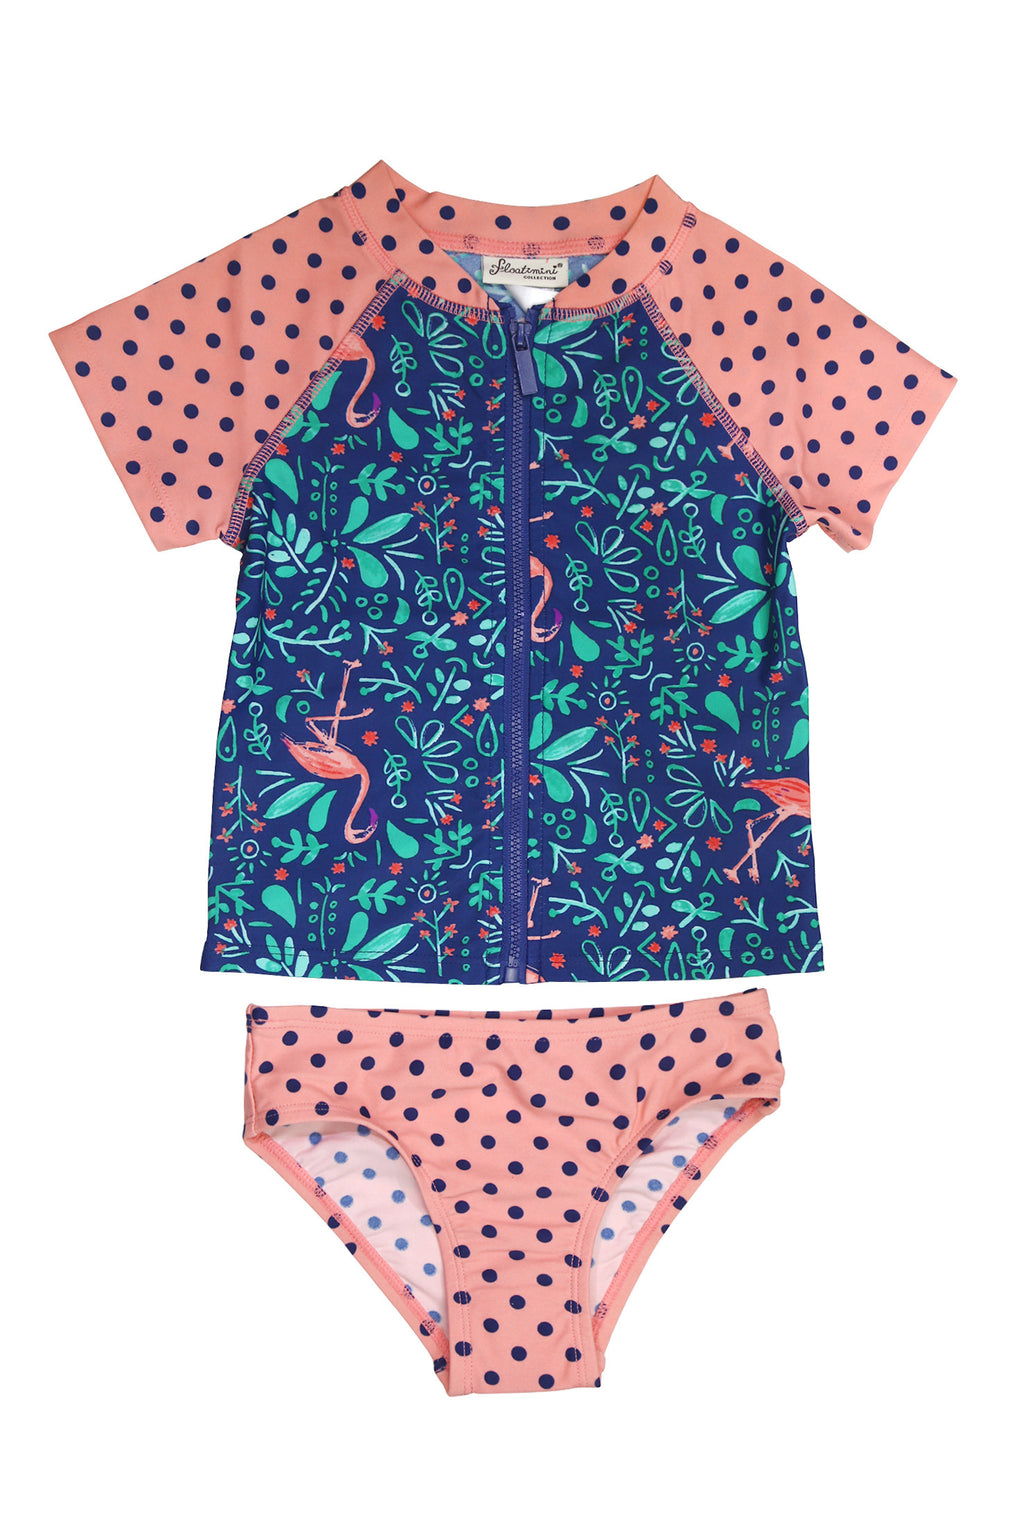 Botanical Flamingo Short Sleeve Zip-up Rash Guard Set, navy